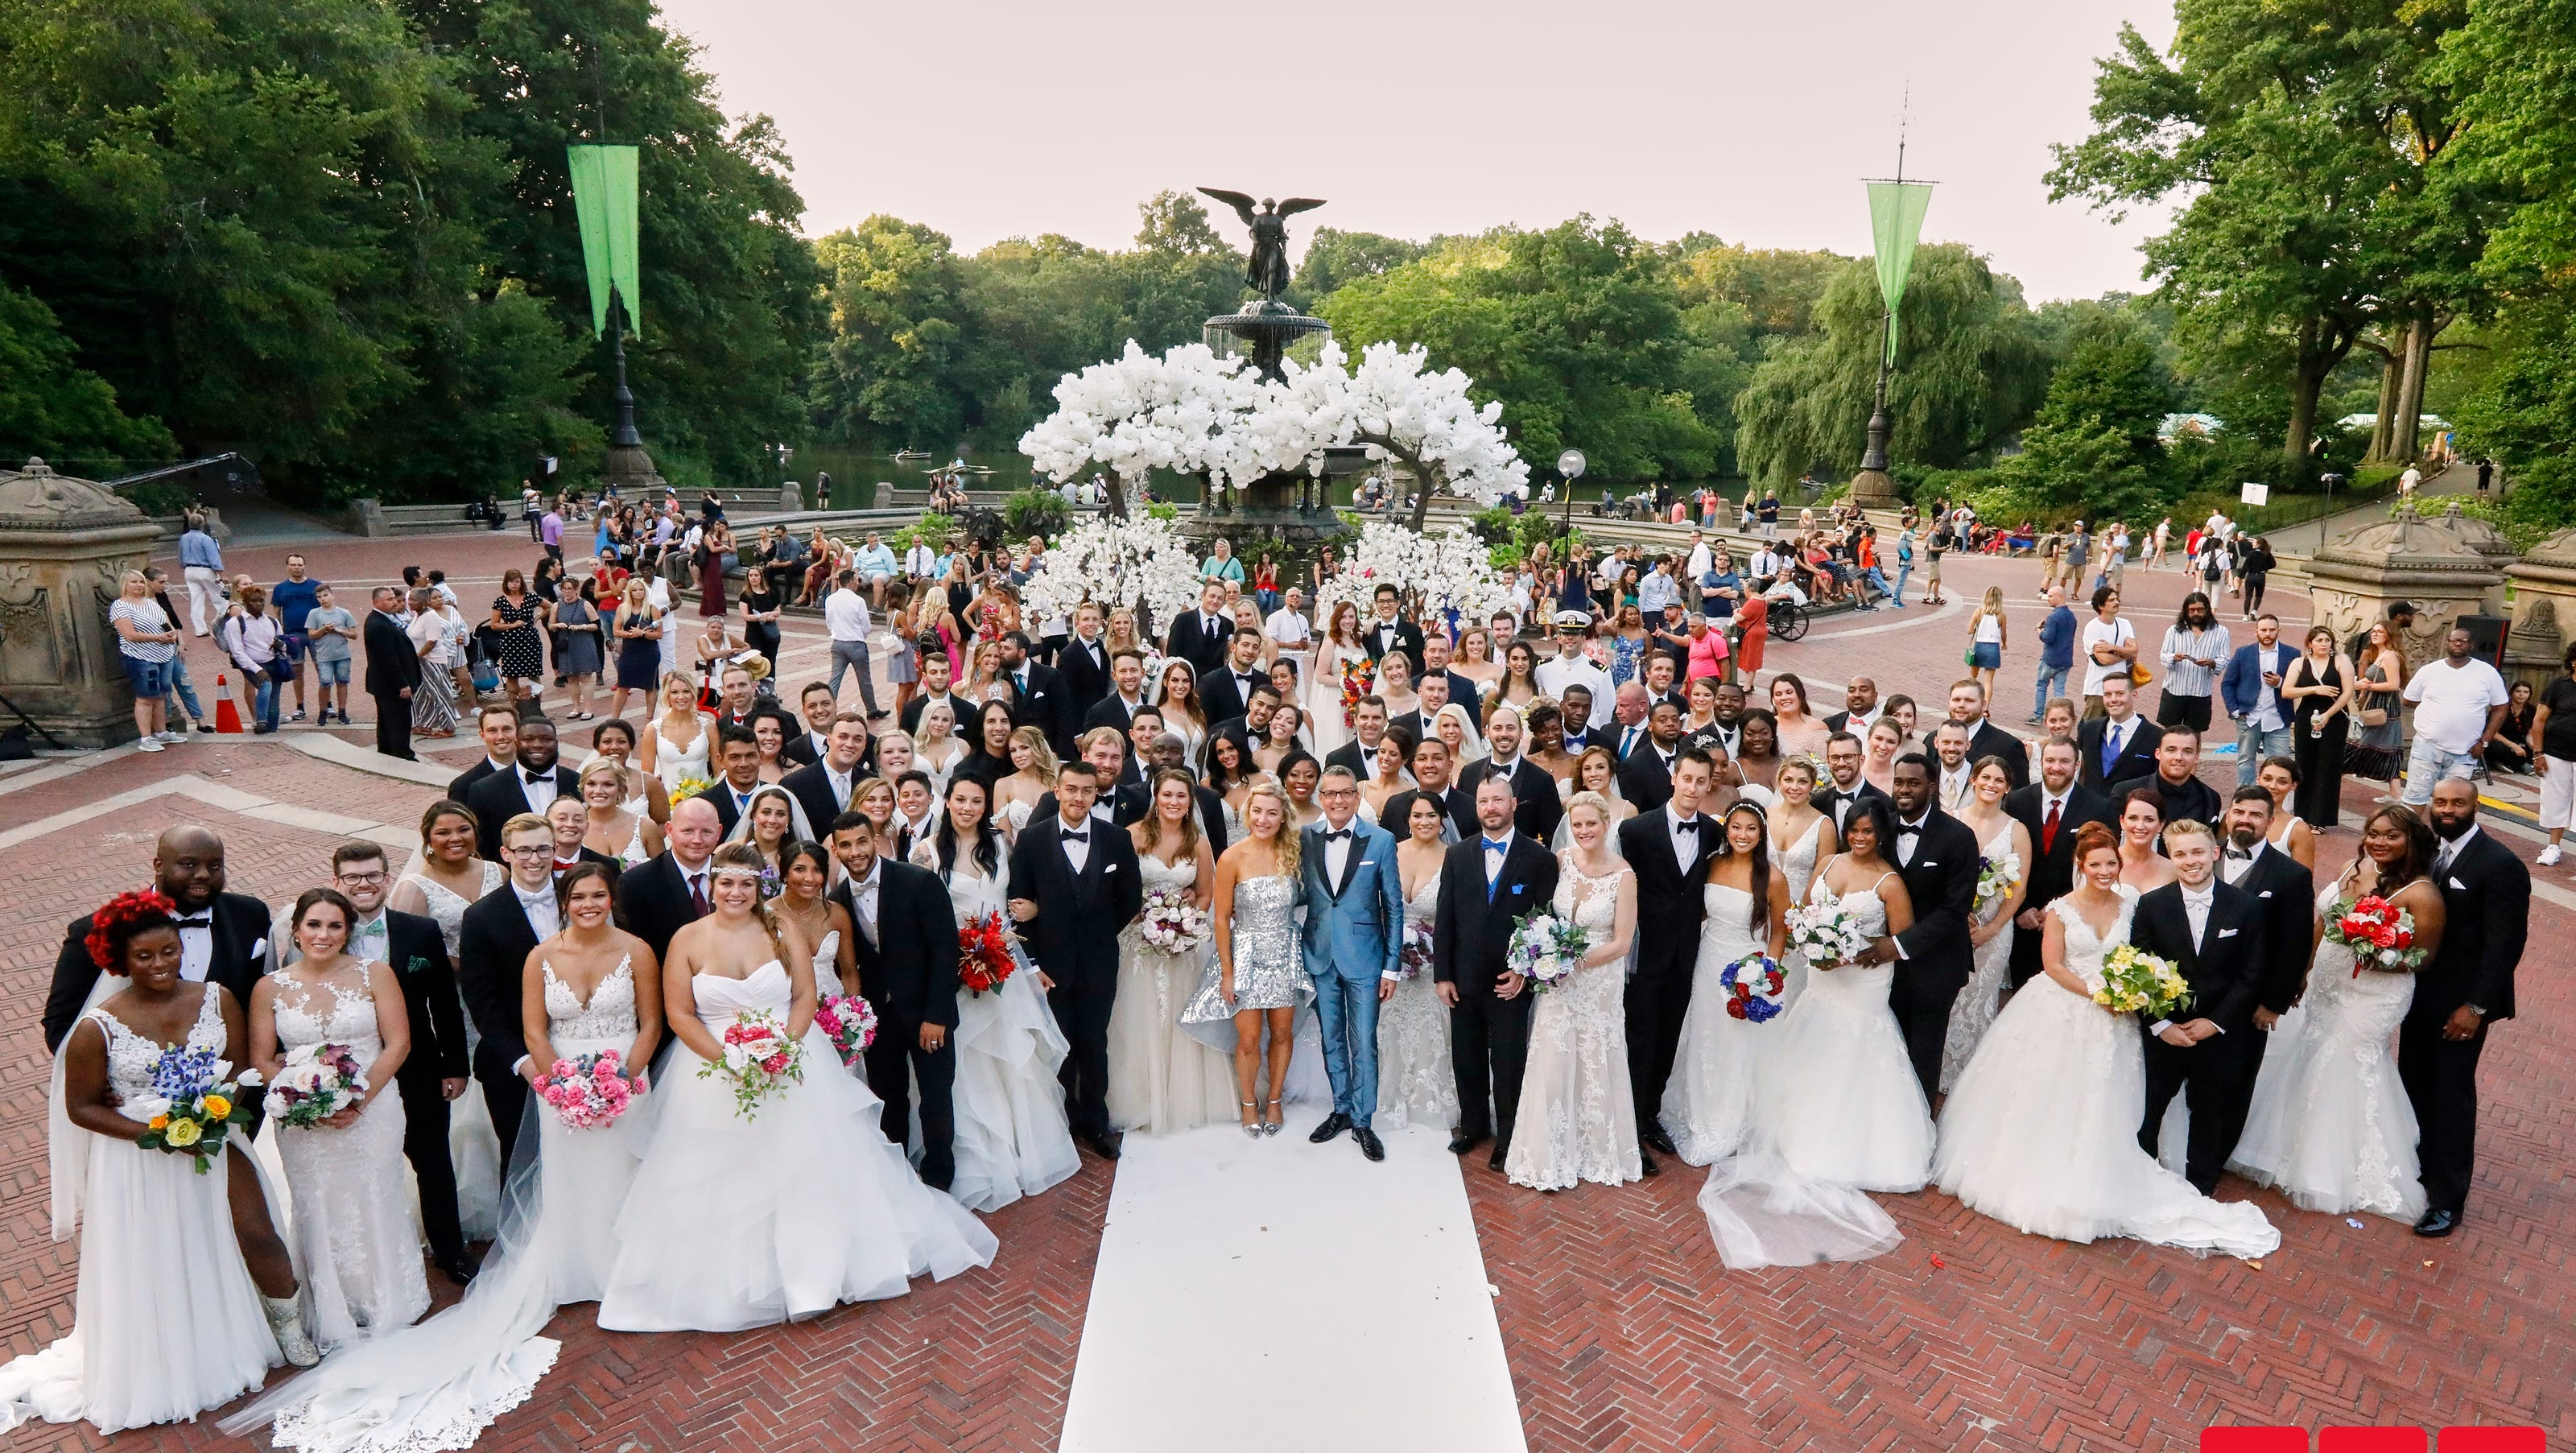 Say Yes To The Dress Marries 52 Couples At Once In Central Park